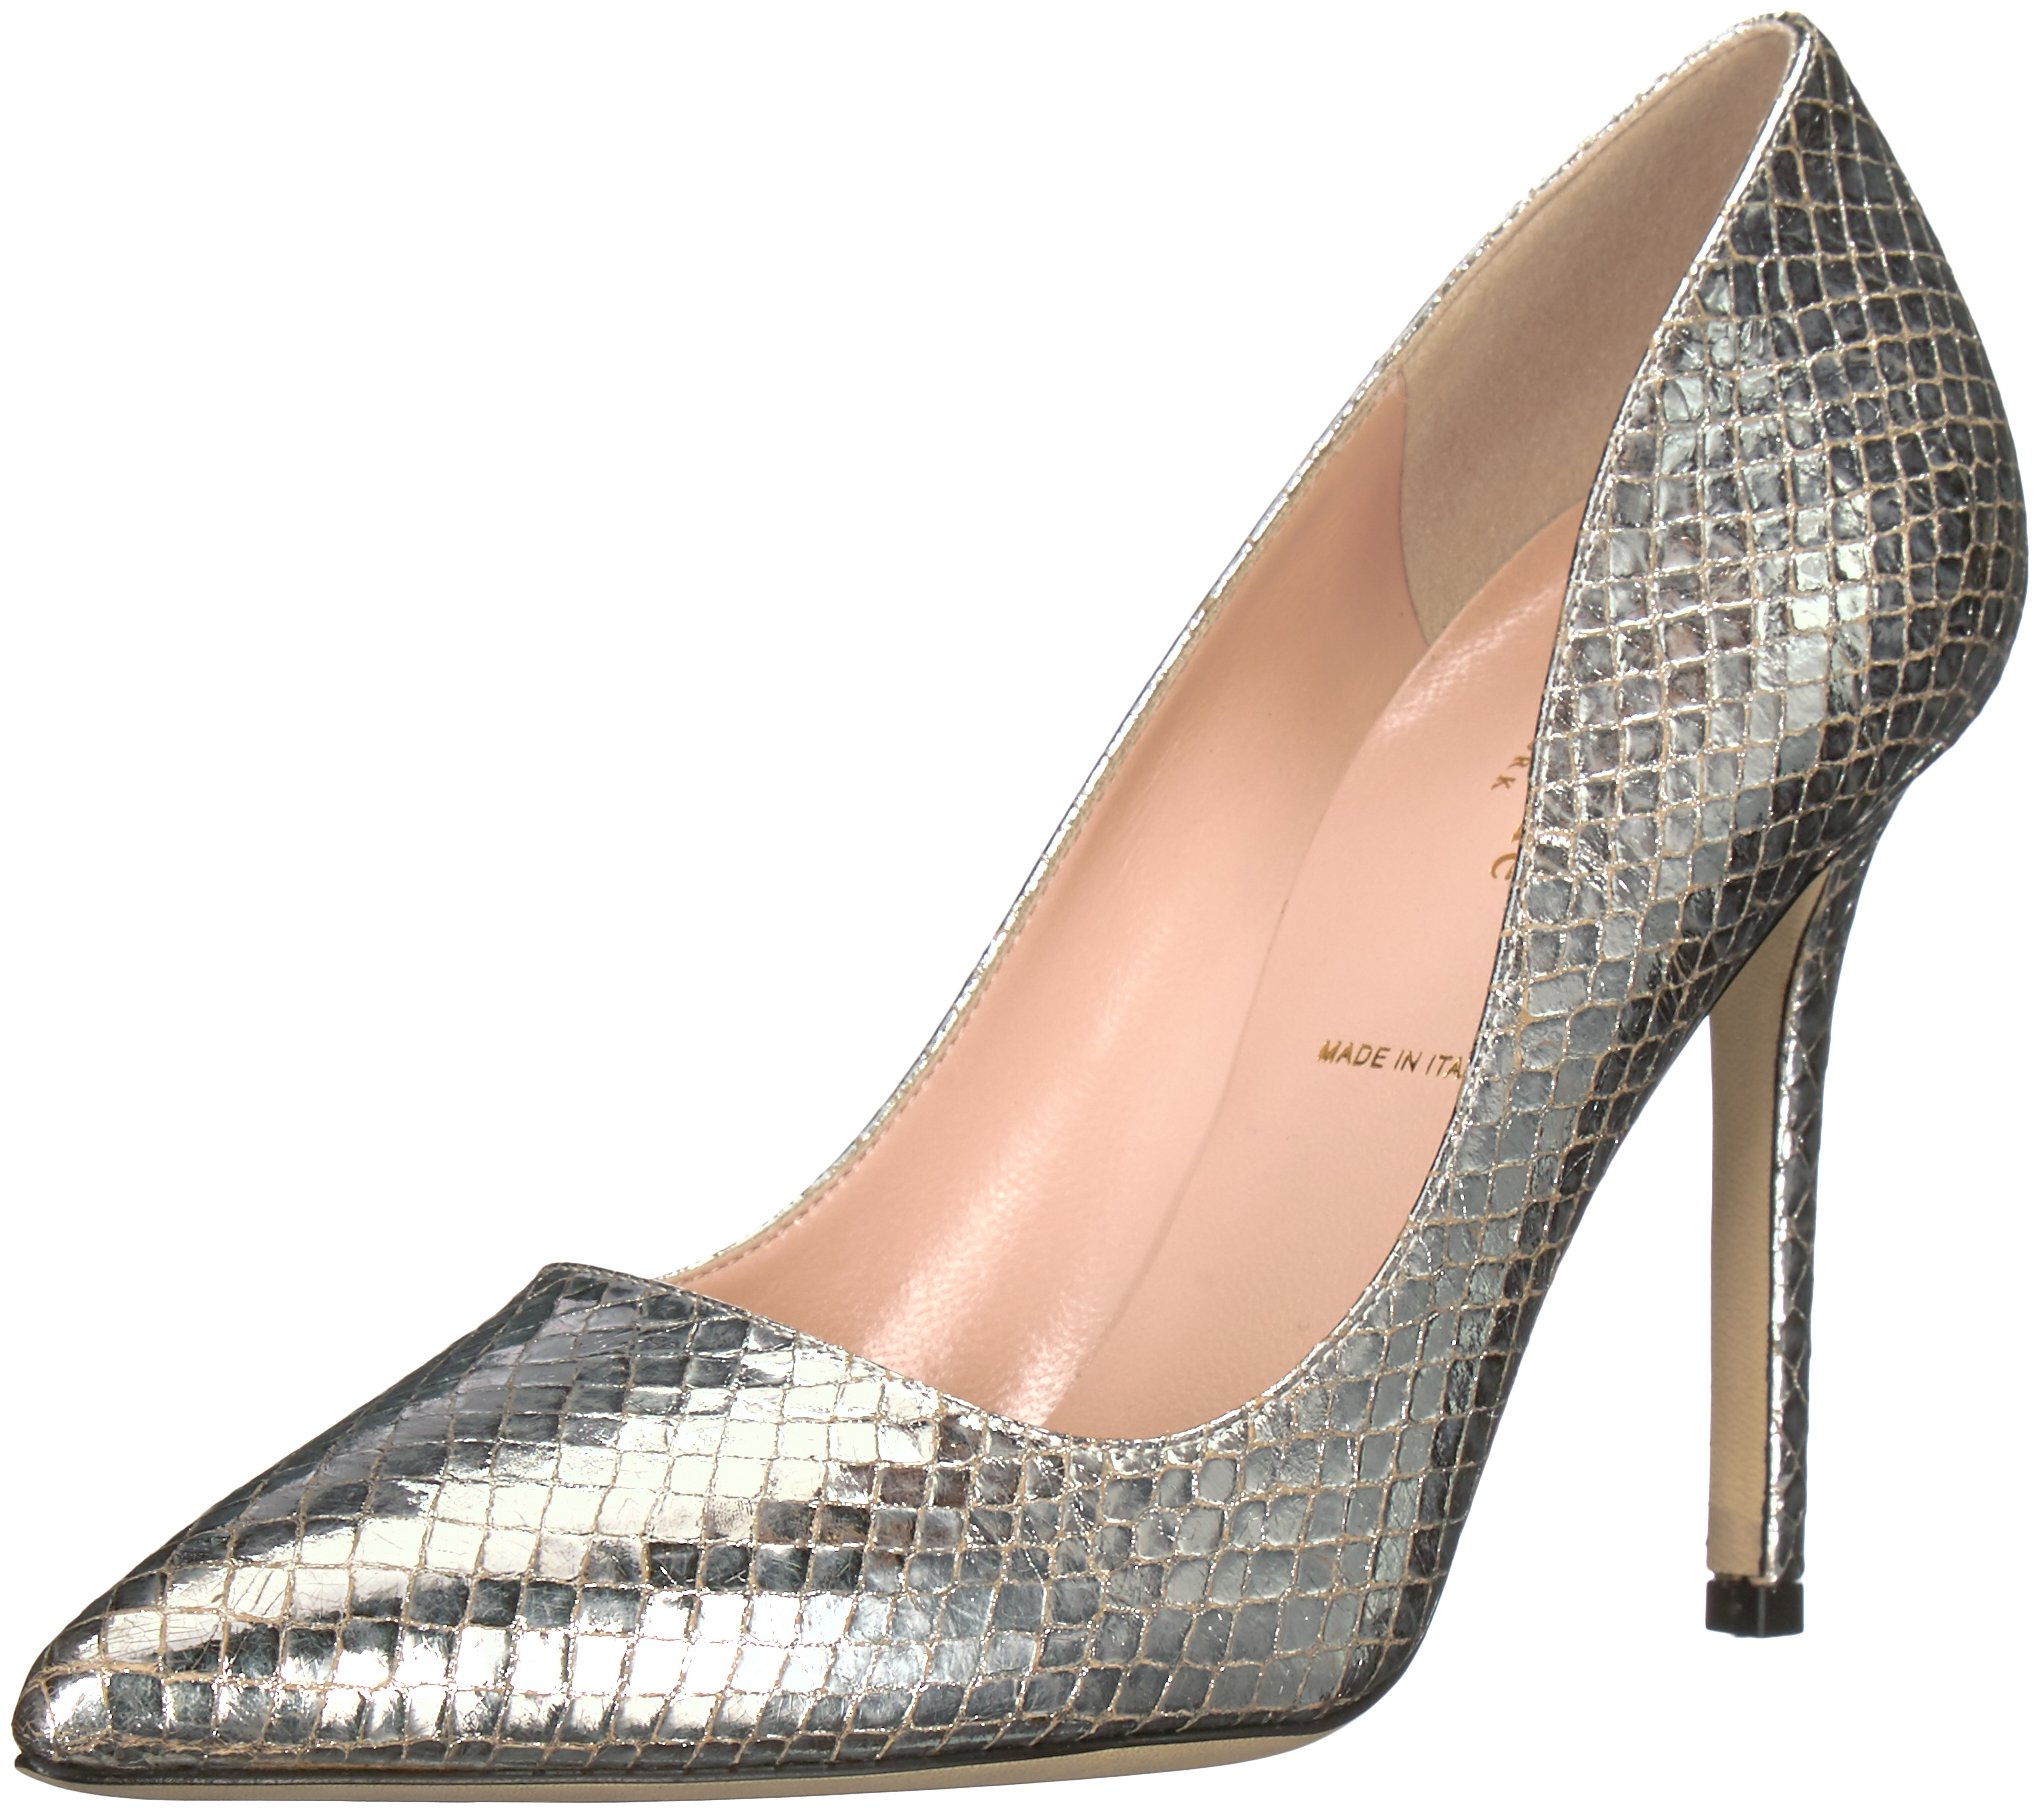 kate spade new york Women's Larisa, Silver, 8 M US by Kate Spade New York